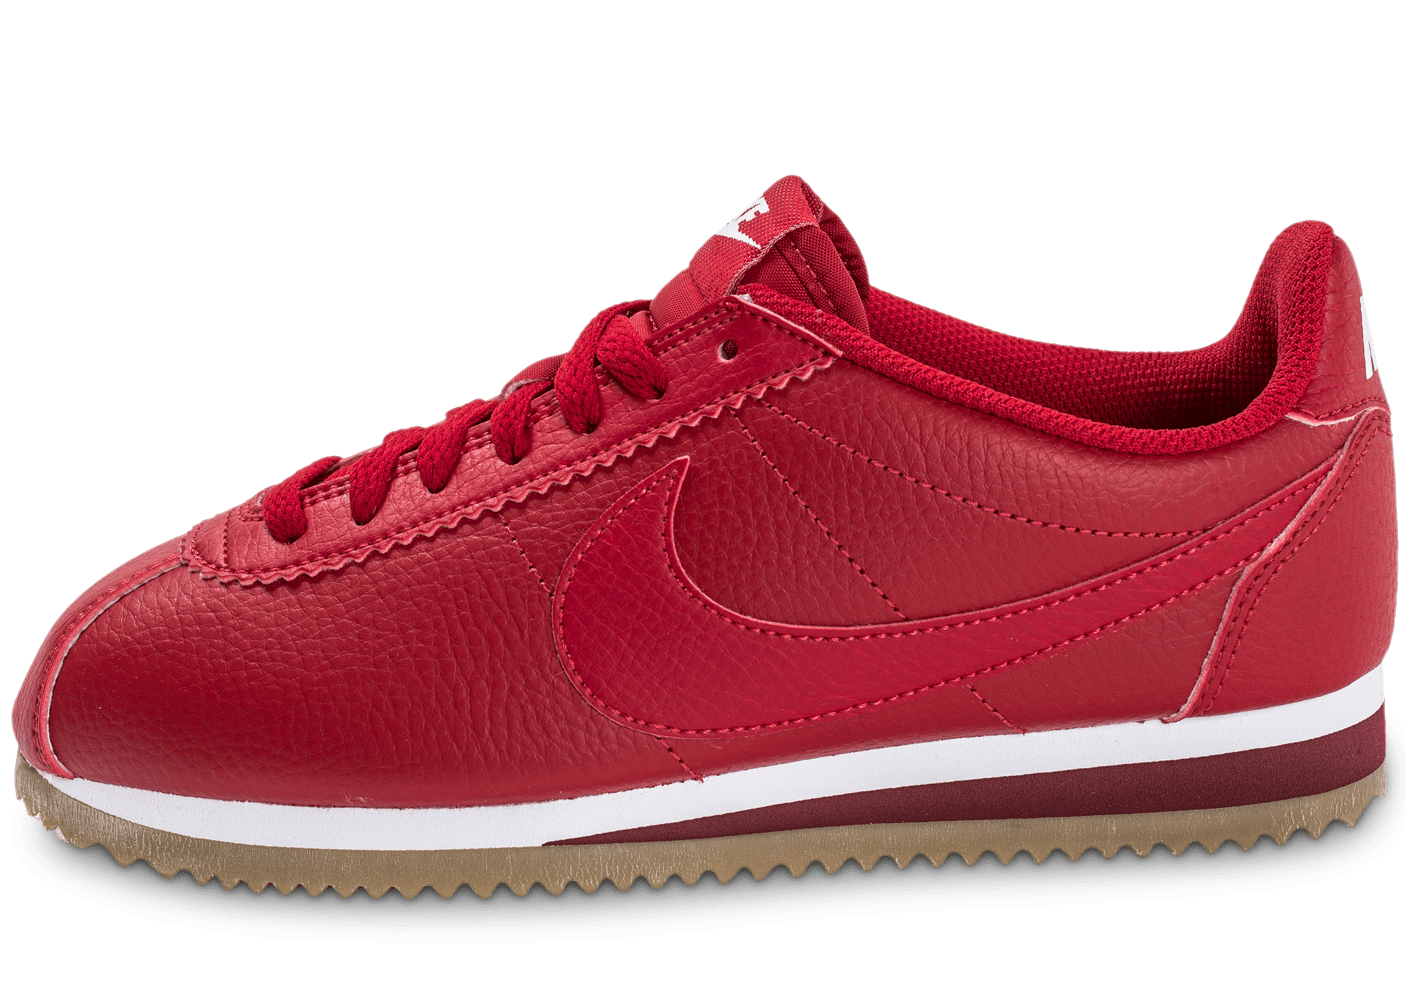 nike cortez leather w rouge chaussures femme chausport. Black Bedroom Furniture Sets. Home Design Ideas